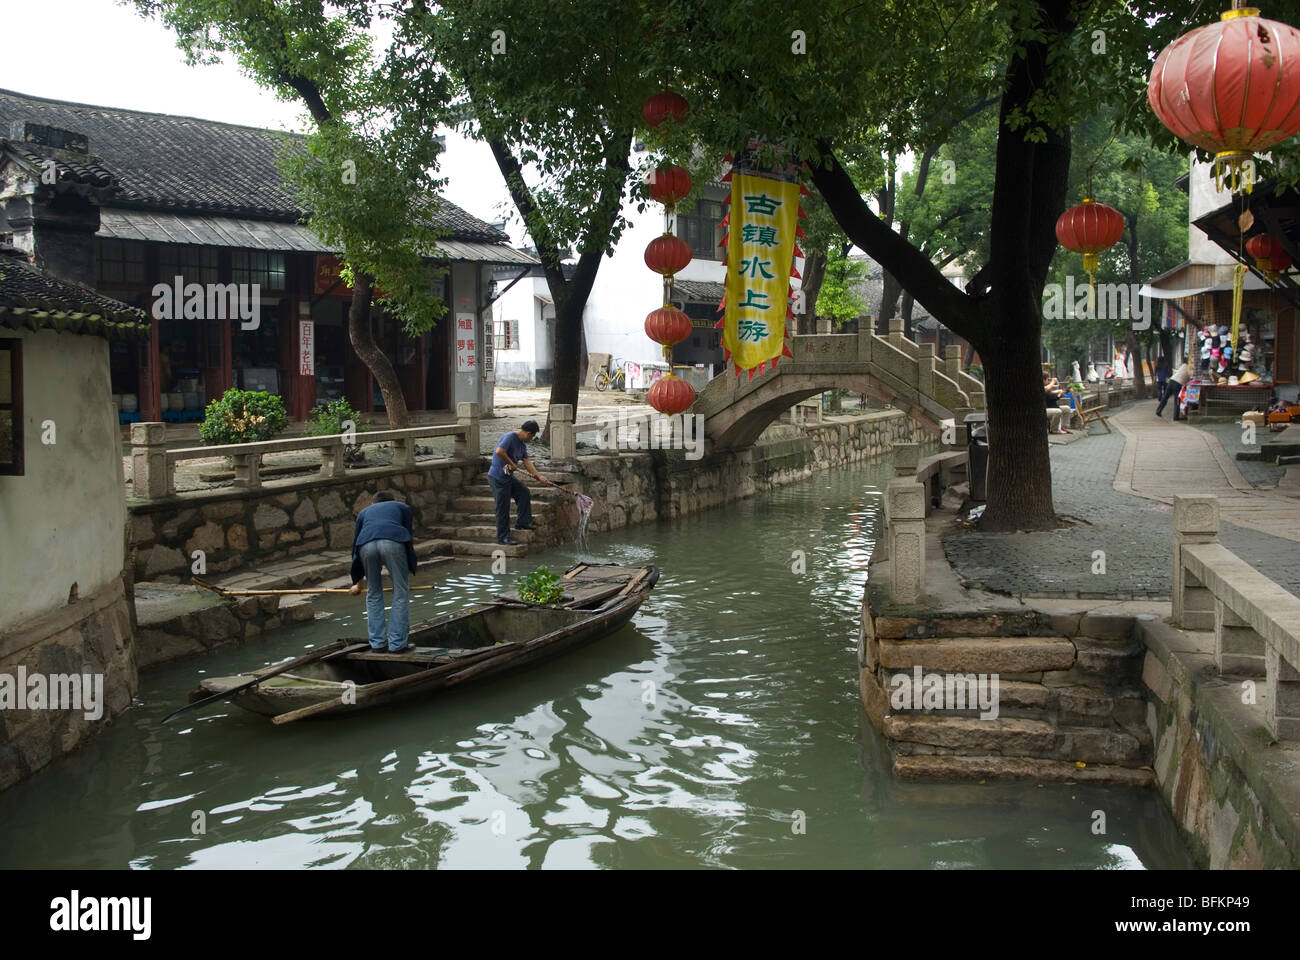 One of the canals in the small ancient town of Luzhi, Jiangsu province, China. - Stock Image